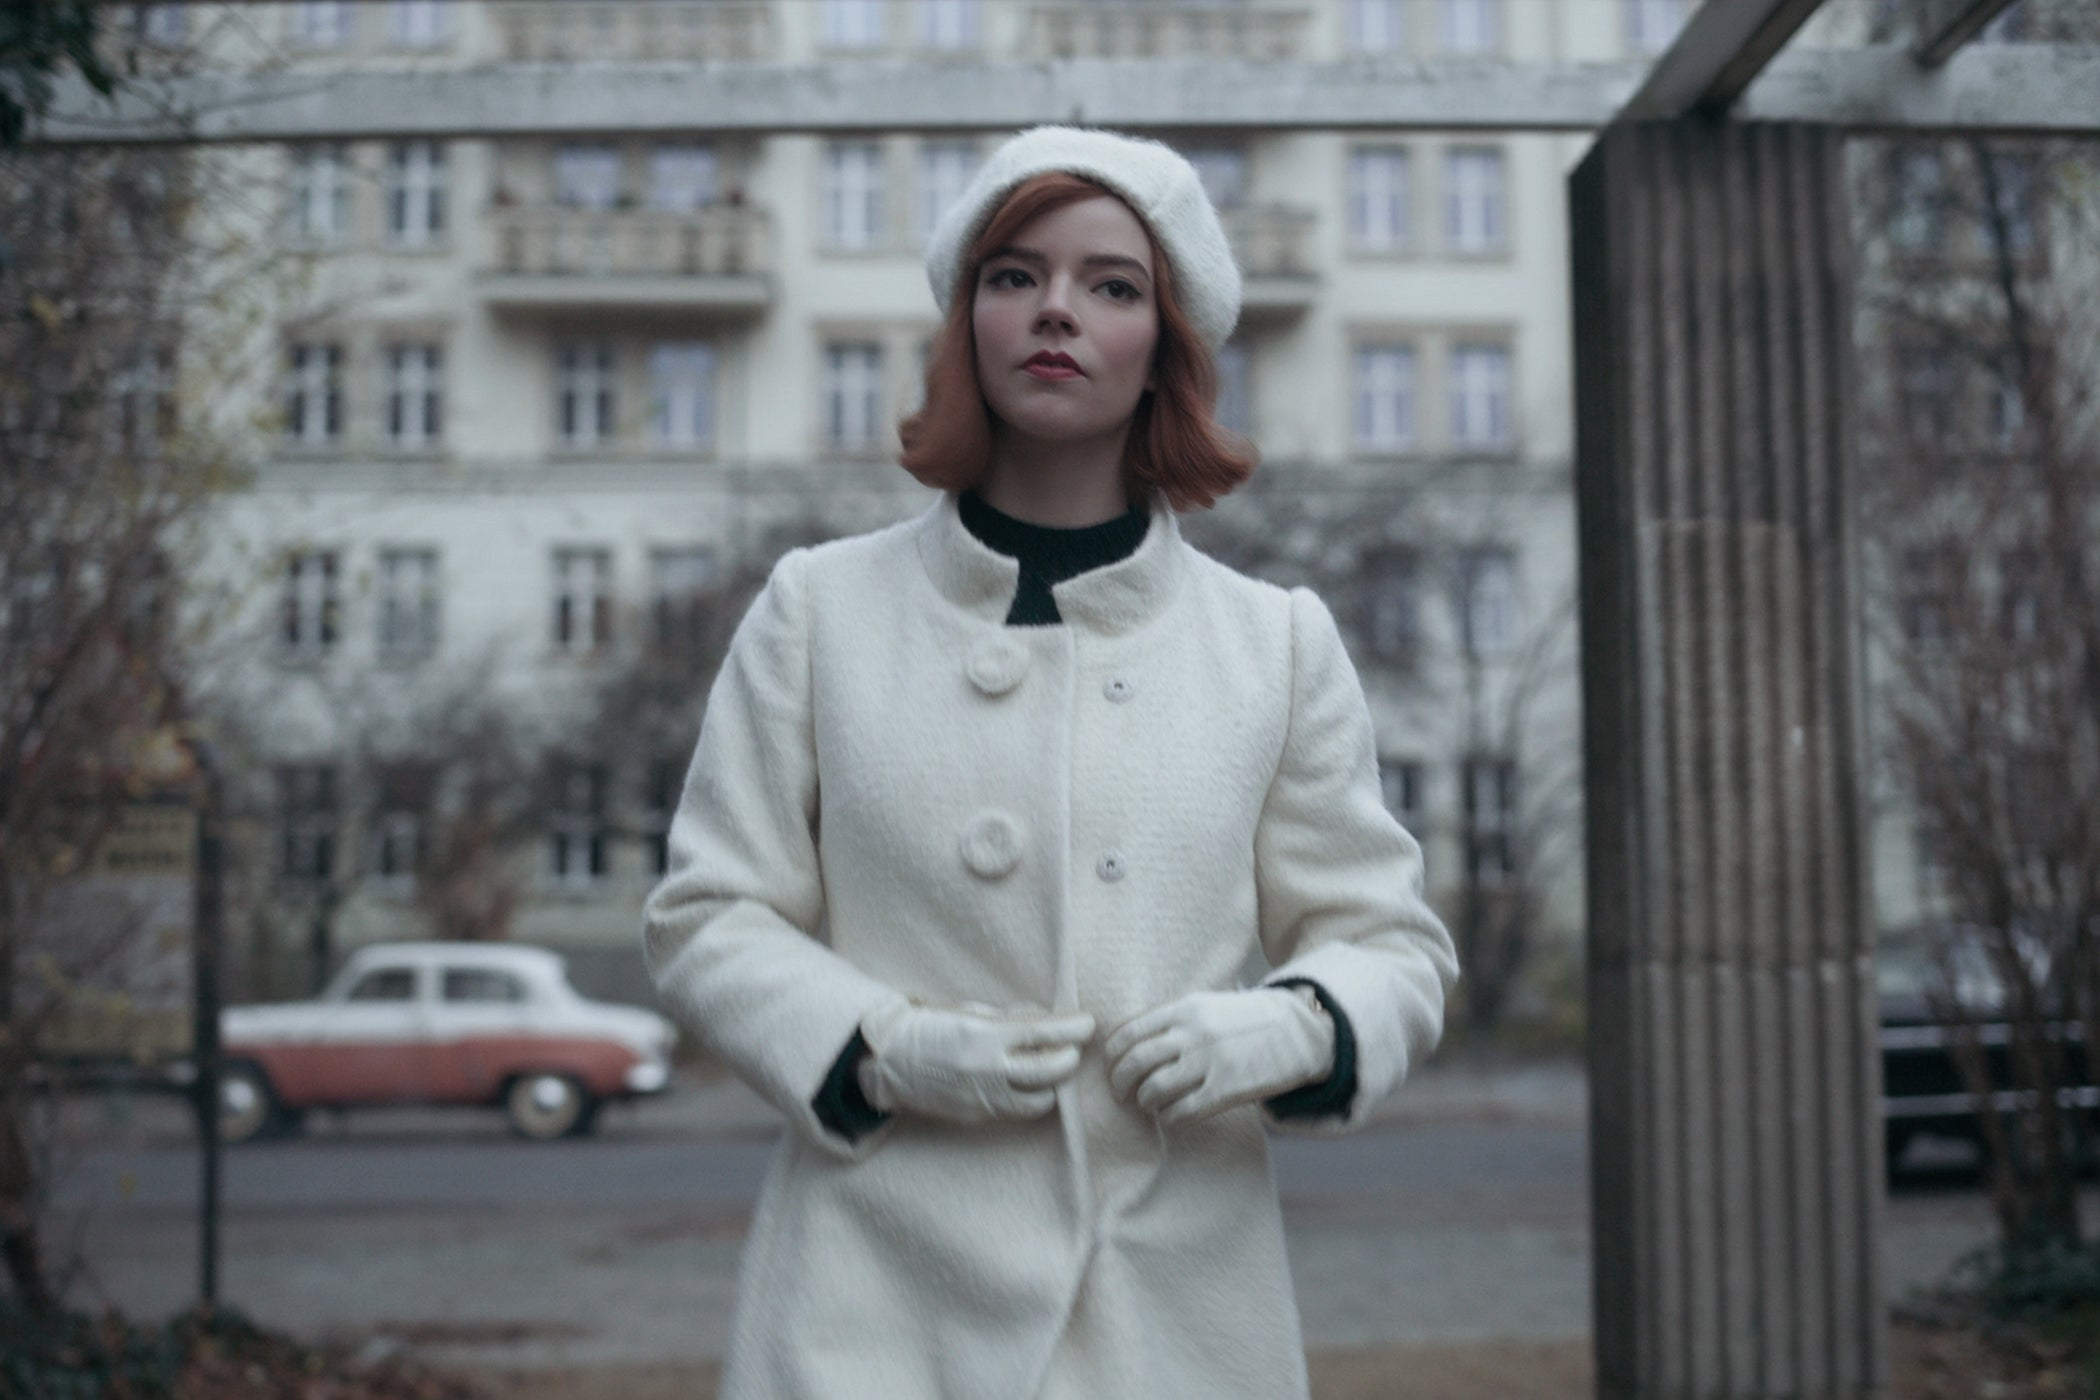 """""""At the end of her Russian stay we created this look,"""" says Binder. """"It shows tremen-dous confidence. She has arrived. It is classic. She knows who she is and owns it in understated simplicity.""""  Note the beret – a head adornment seen in Emily in Paris –"""